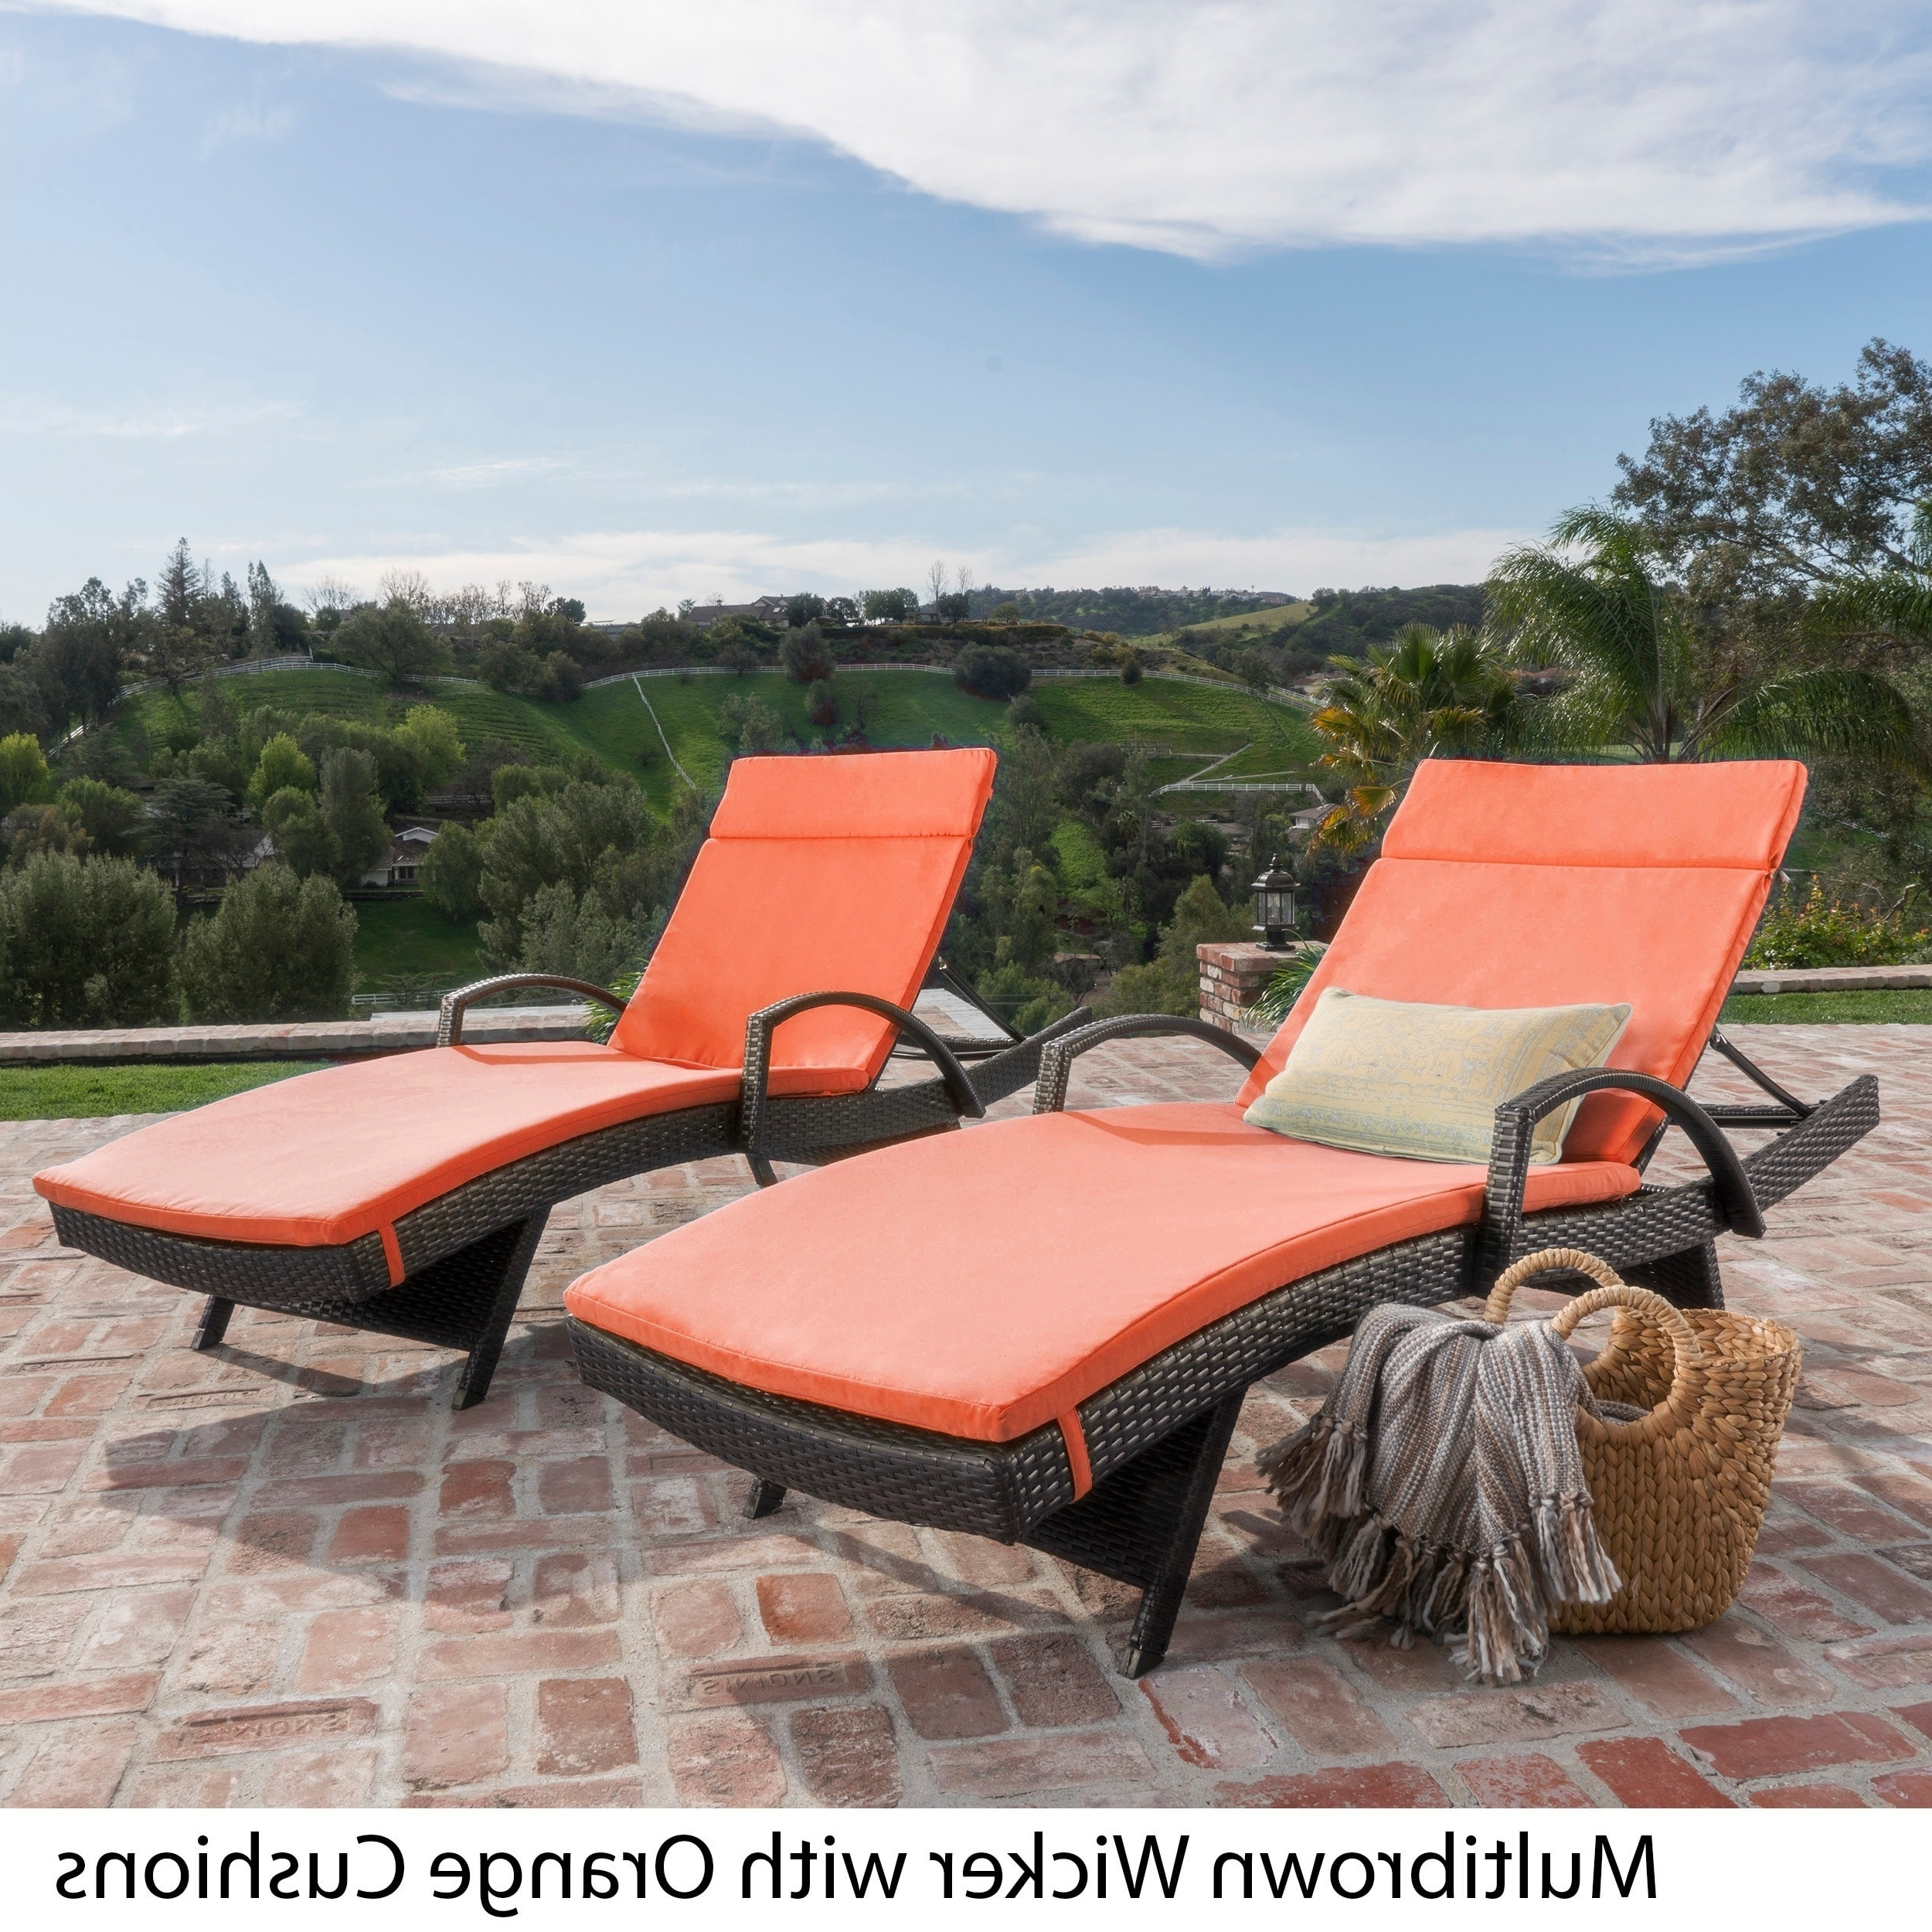 Orange Chaise Lounges Regarding Most Recently Released Toscana Outdoor Wicker Armed Chaise Lounge Chair With Cushion (View 15 of 15)